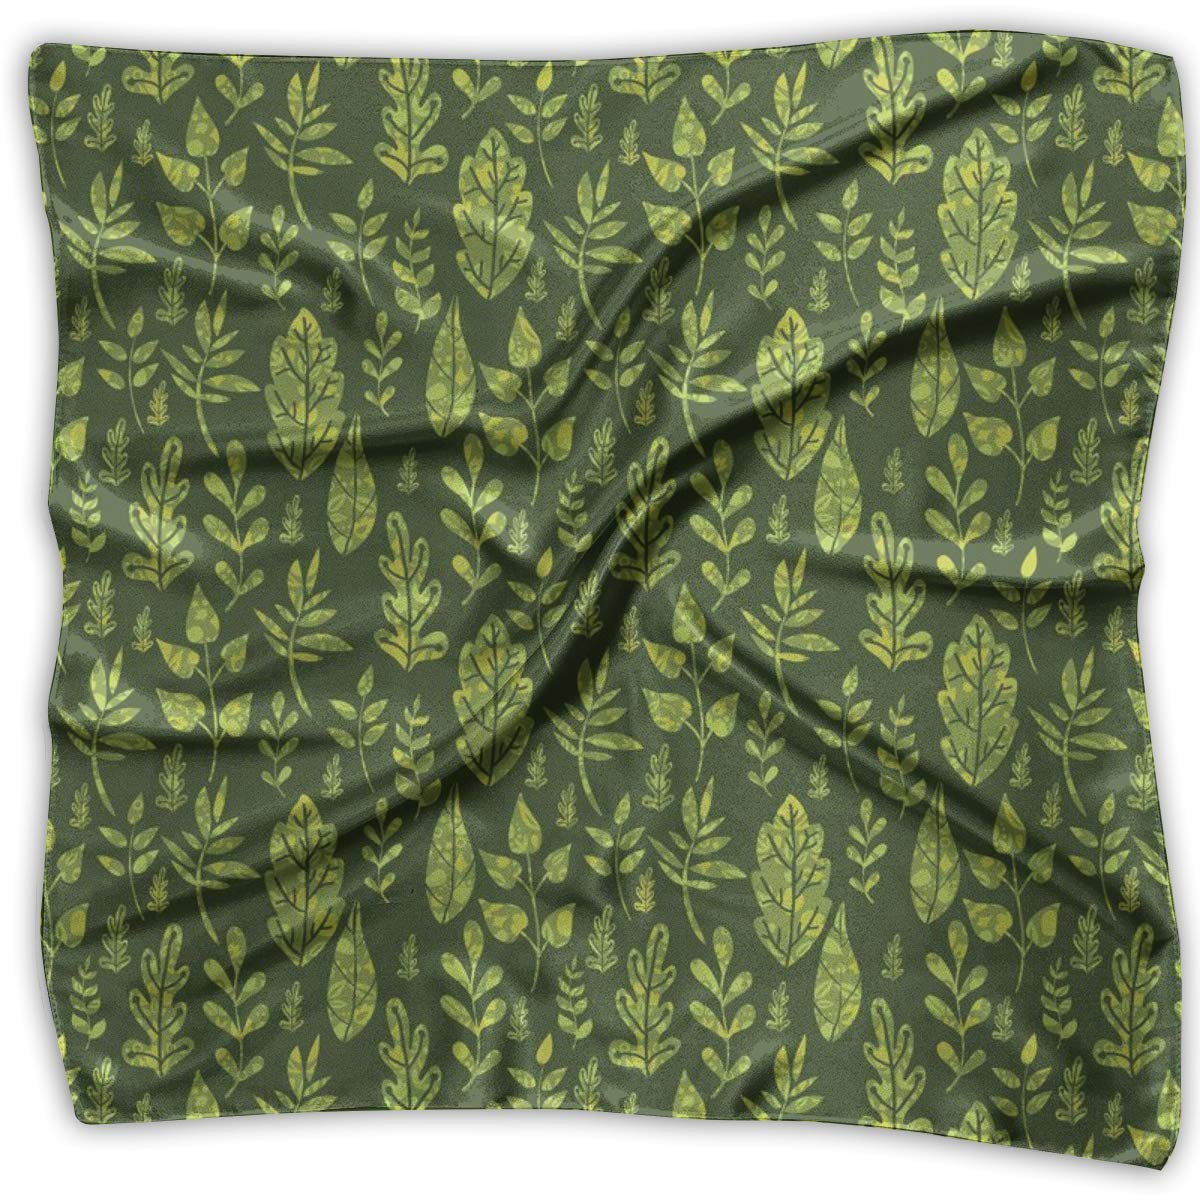 Bandana Head and Neck Tie Neckerchief,Patterned Green Leaves Nature Inspired Composition Fresh Trees Woodland,Headband